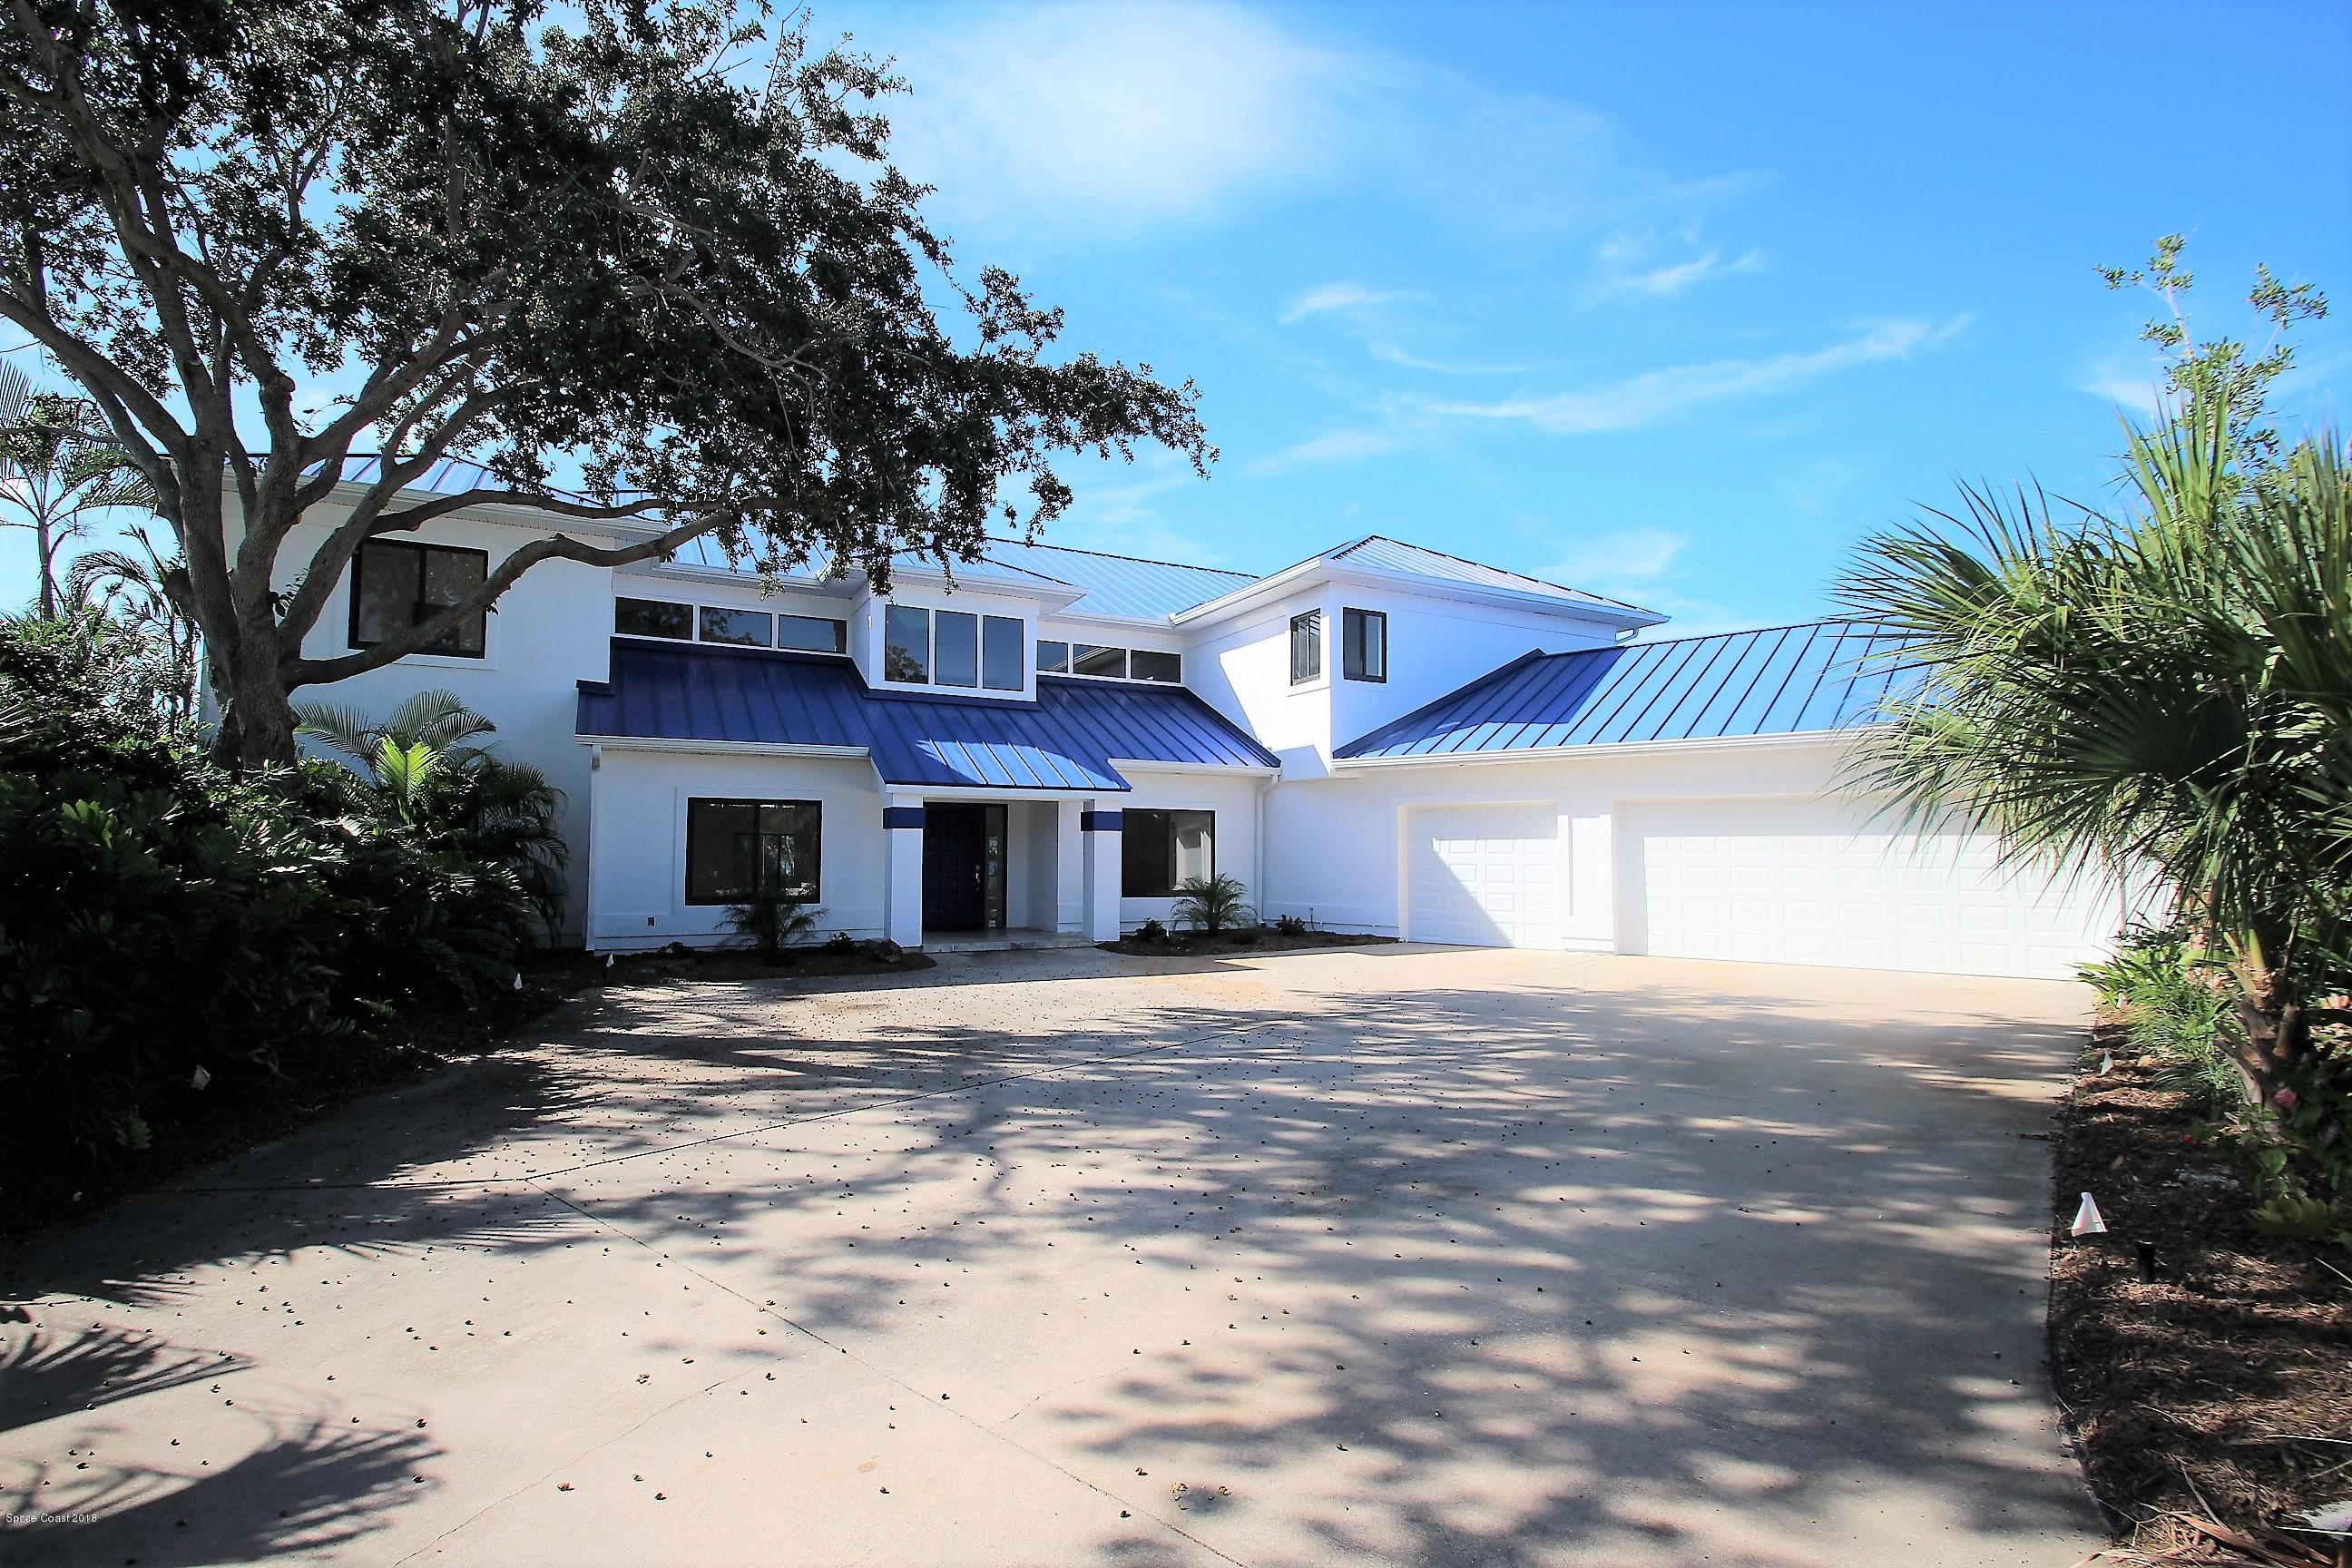 Property for Sale at 600 Loggerhead Island 600 Loggerhead Island Satellite Beach, Florida 32937 United States